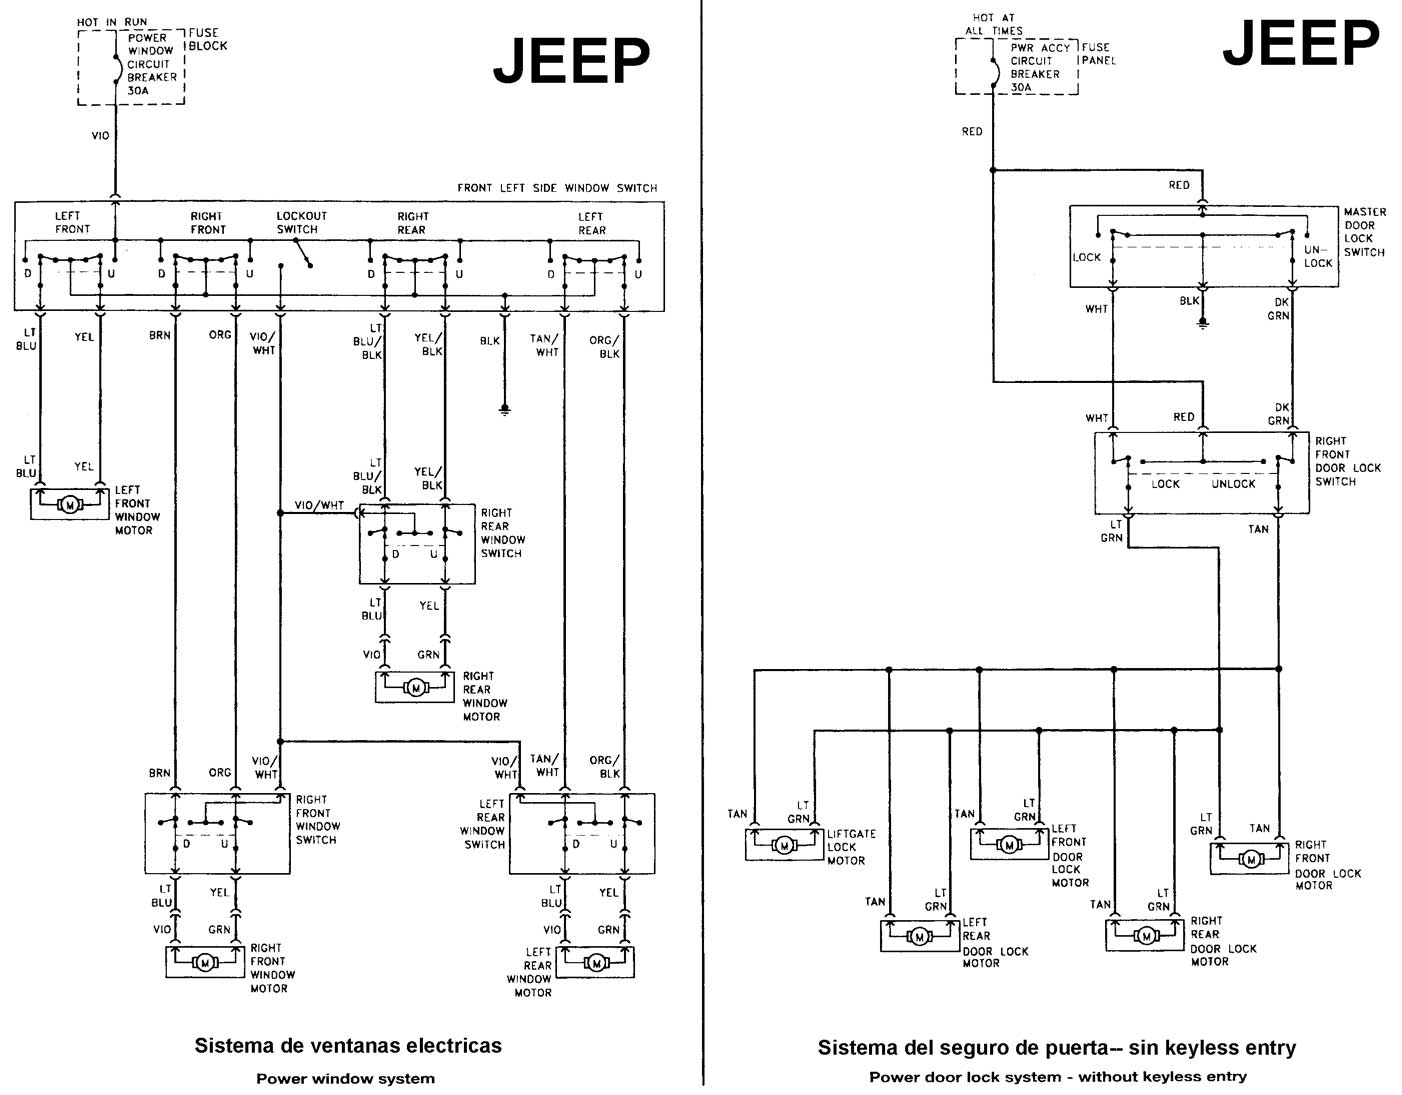 1999 Plymouth Voyager Fuse Box Diagram together with 1988 Jaguar Xjs V12 Wiring Diagram additionally RepairGuideContent moreover Wj konsola centralna in addition 30679 Fuel Check Valve. on 1984 jeep cherokee wiring diagram